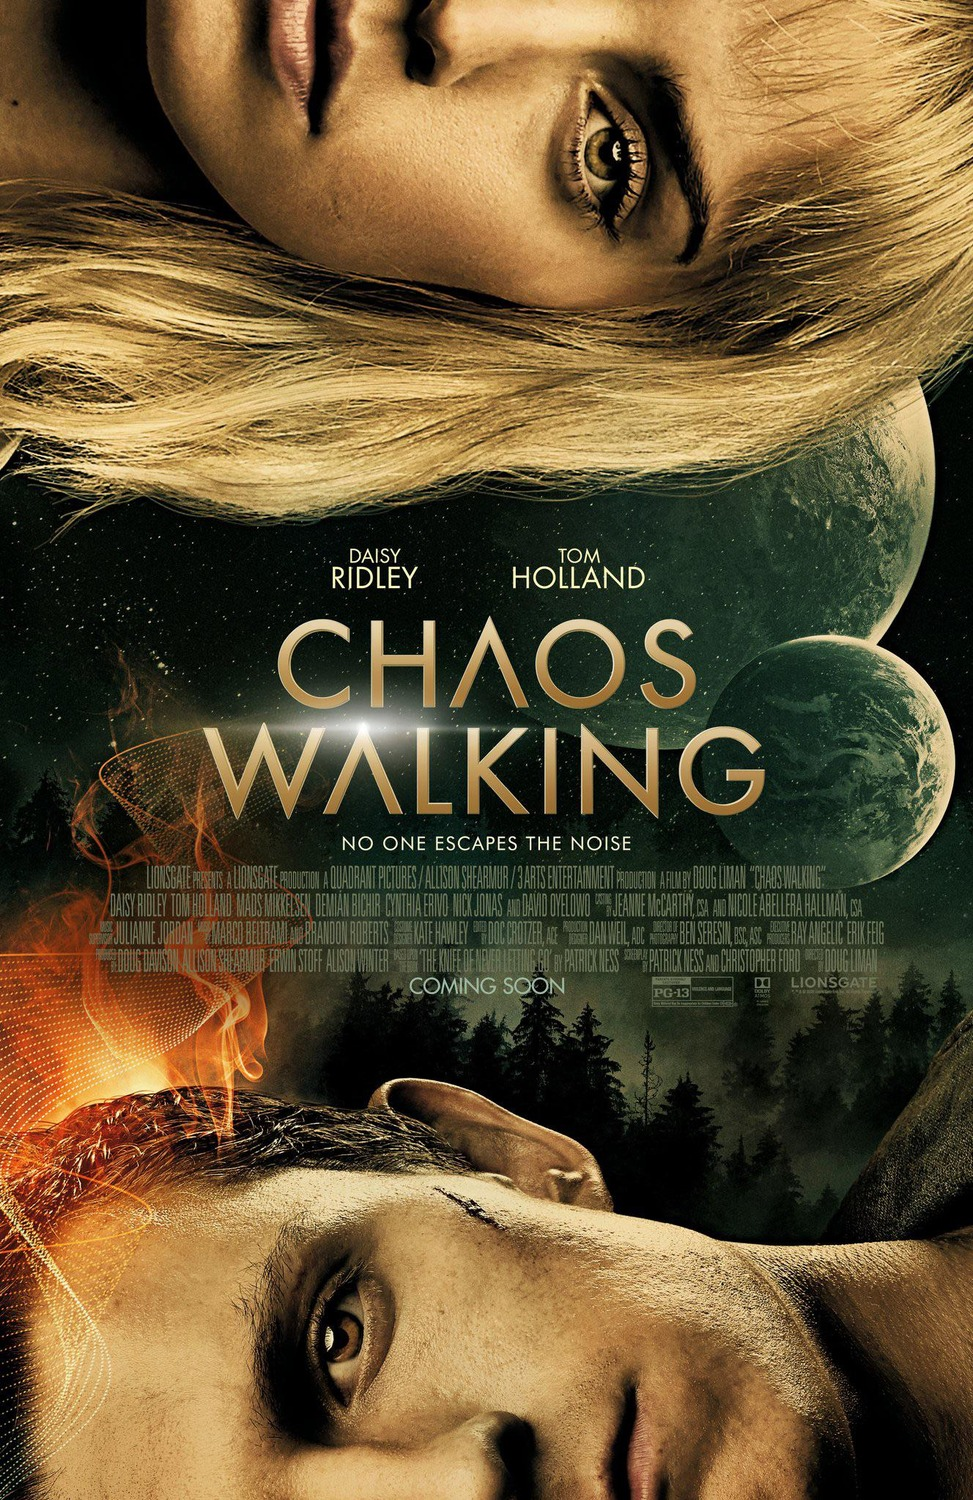 Chaos Walking (2021) Bengali Dubbed (Voice Over) HDCAM 720p [Full Movie] 1XBET